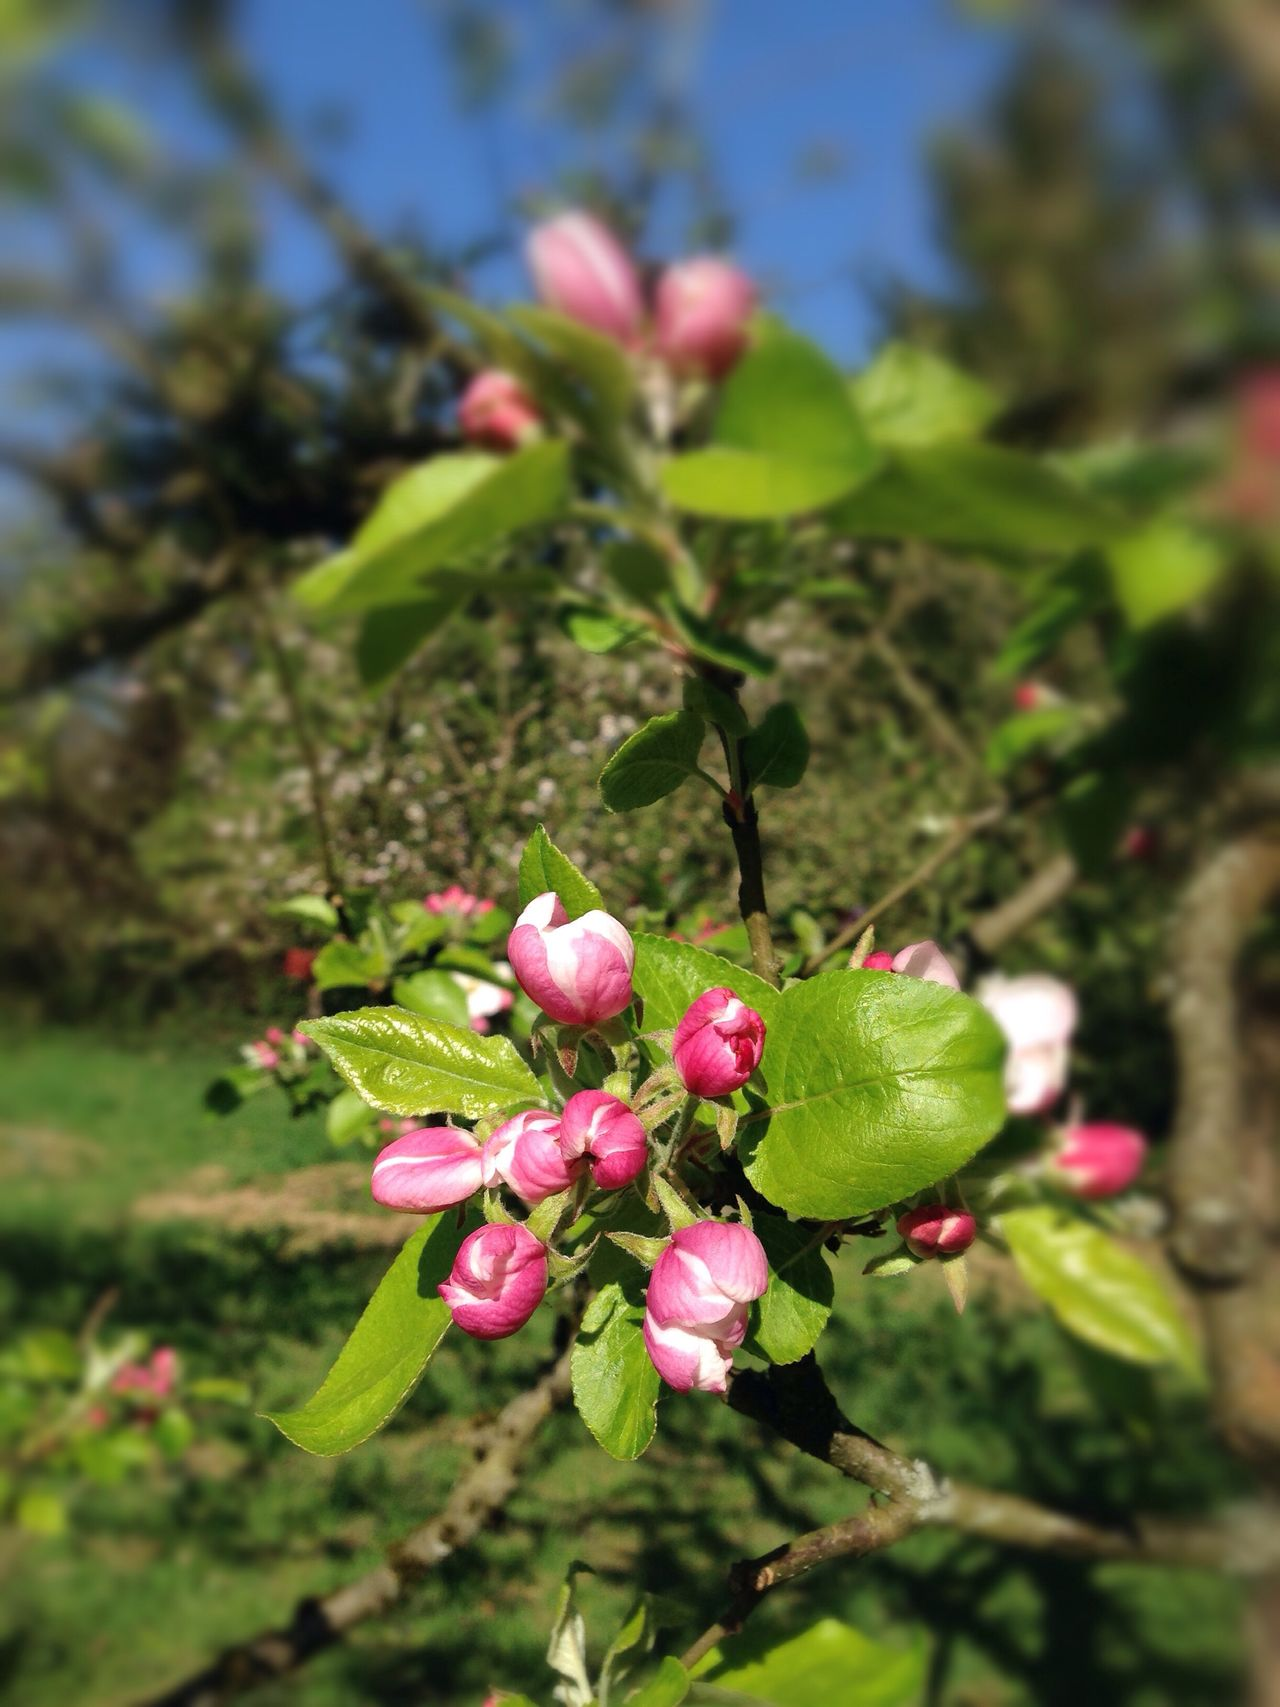 Apple Blossom small Flower Growth Nature Blooming Apple Tree Beauty In Nature Fragility Pink Color Outdoors